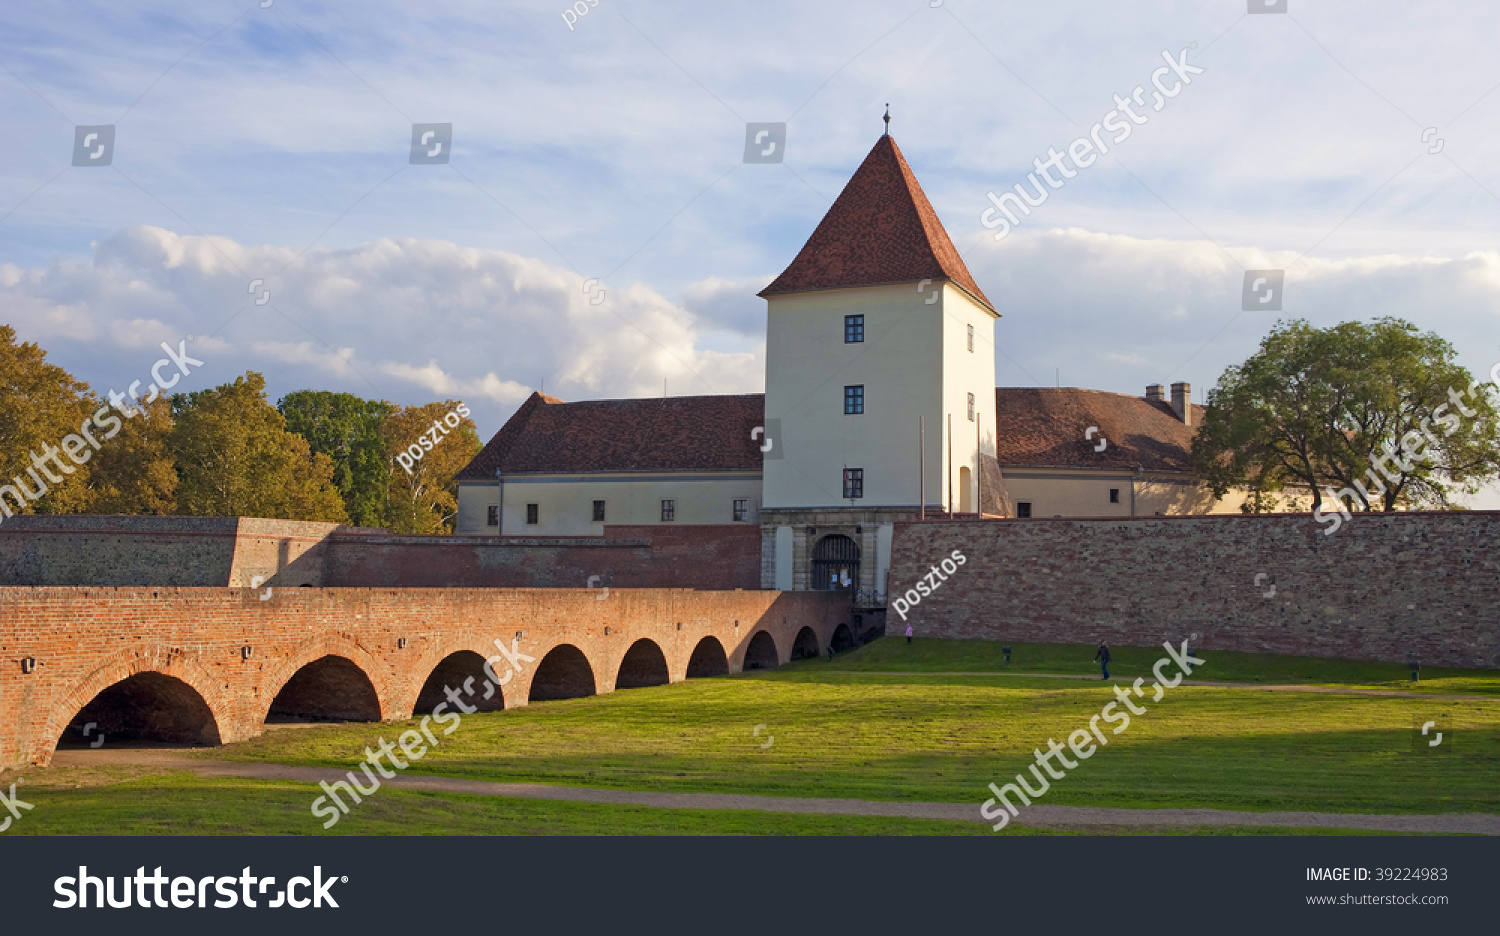 Sarvar Hungary  City pictures : Sarvar Castle In Hungary Stock Photo 39224983 : Shutterstock